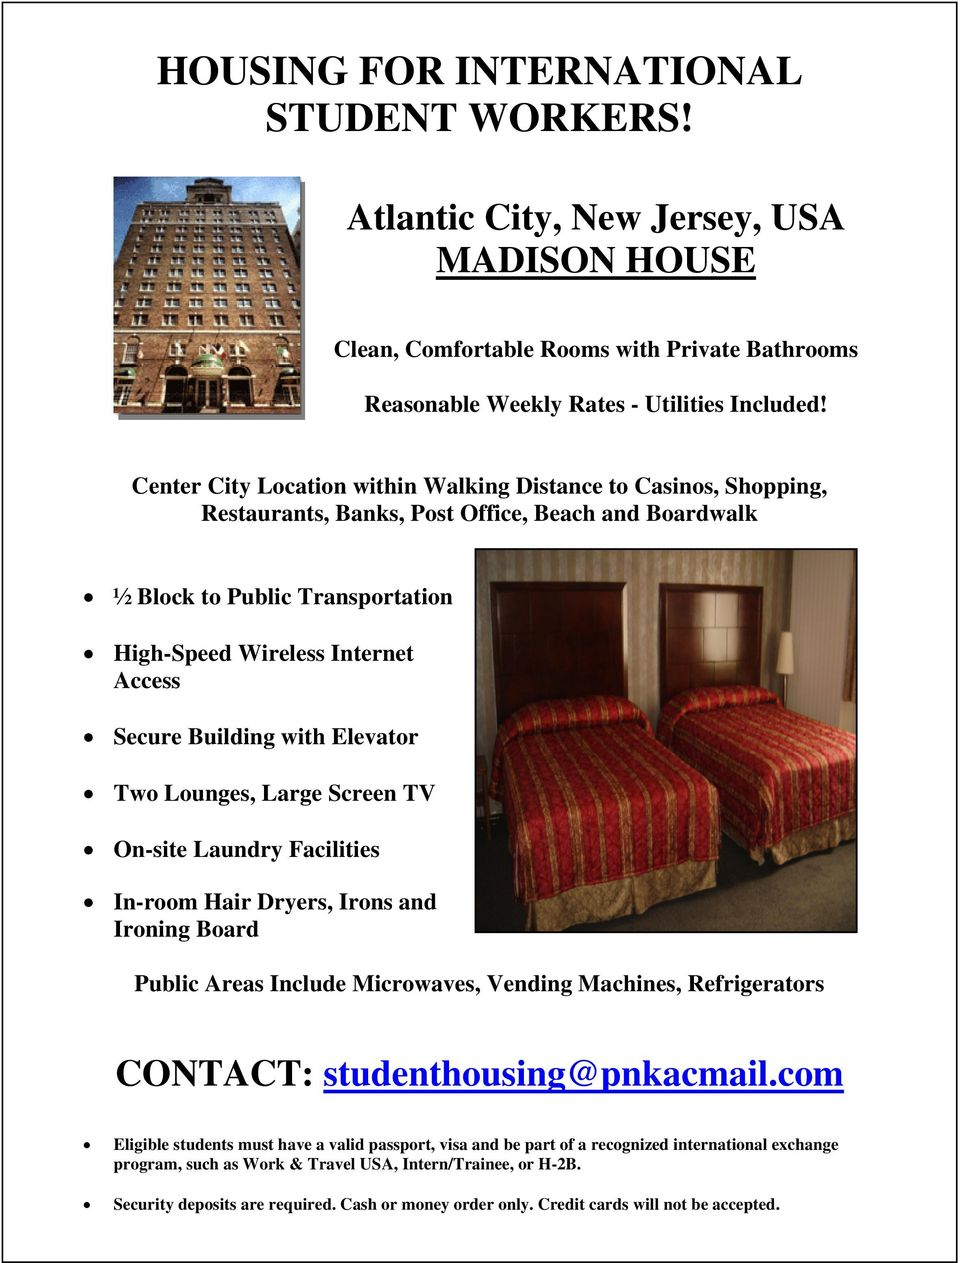 Building with Elevator Two Lounges, Large Screen TV On-site Laundry Facilities In-room Hair Dryers, Irons and Ironing Board Public Areas Include Microwaves, Vending Machines, Refrigerators CONTACT: